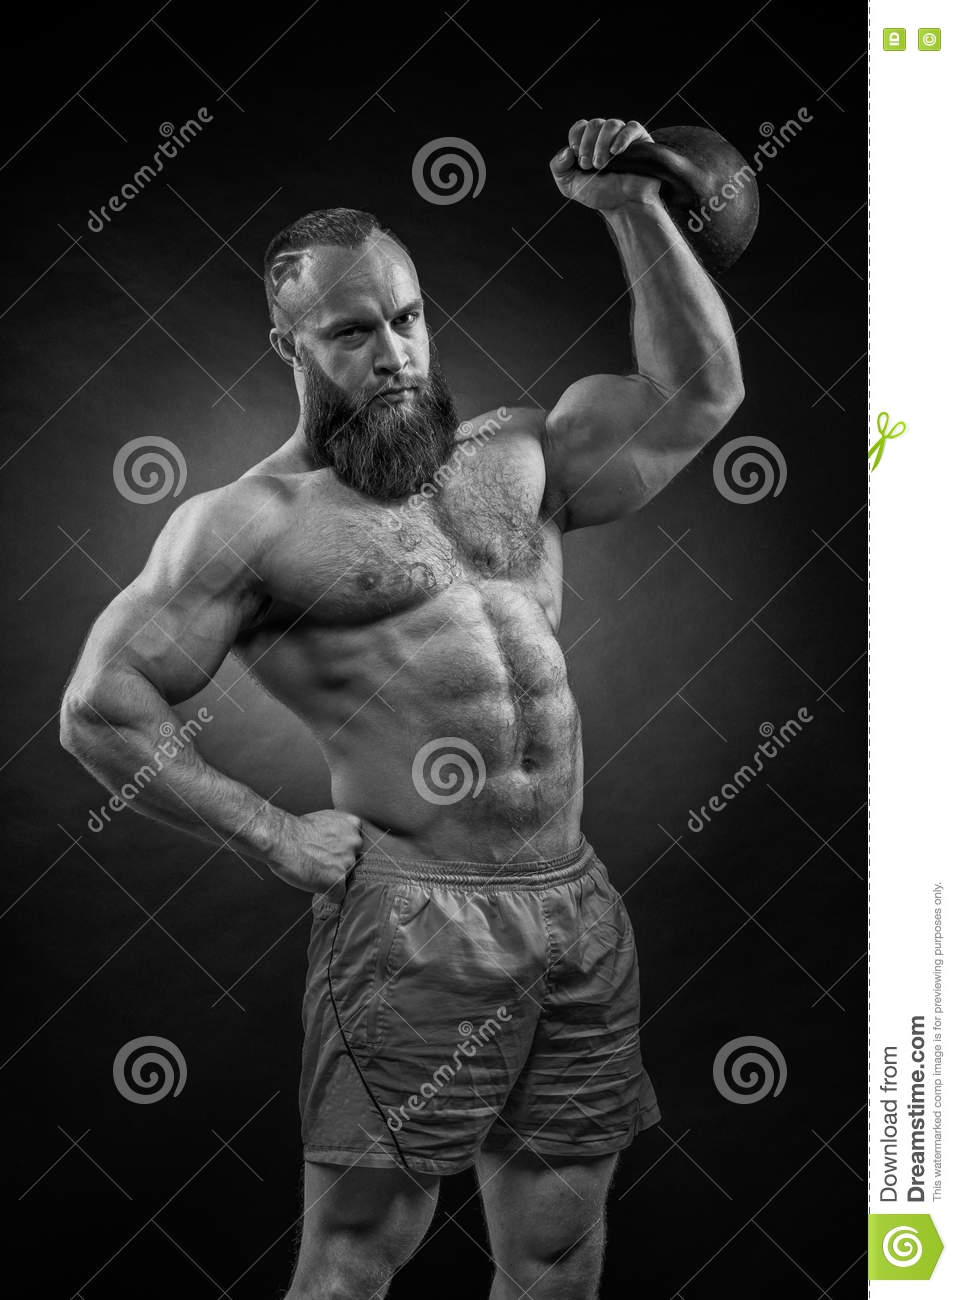 Kettlebell Bodybuilding Bodybuilder With A Beard Lifts A Heavy Kettlebell Stock Image